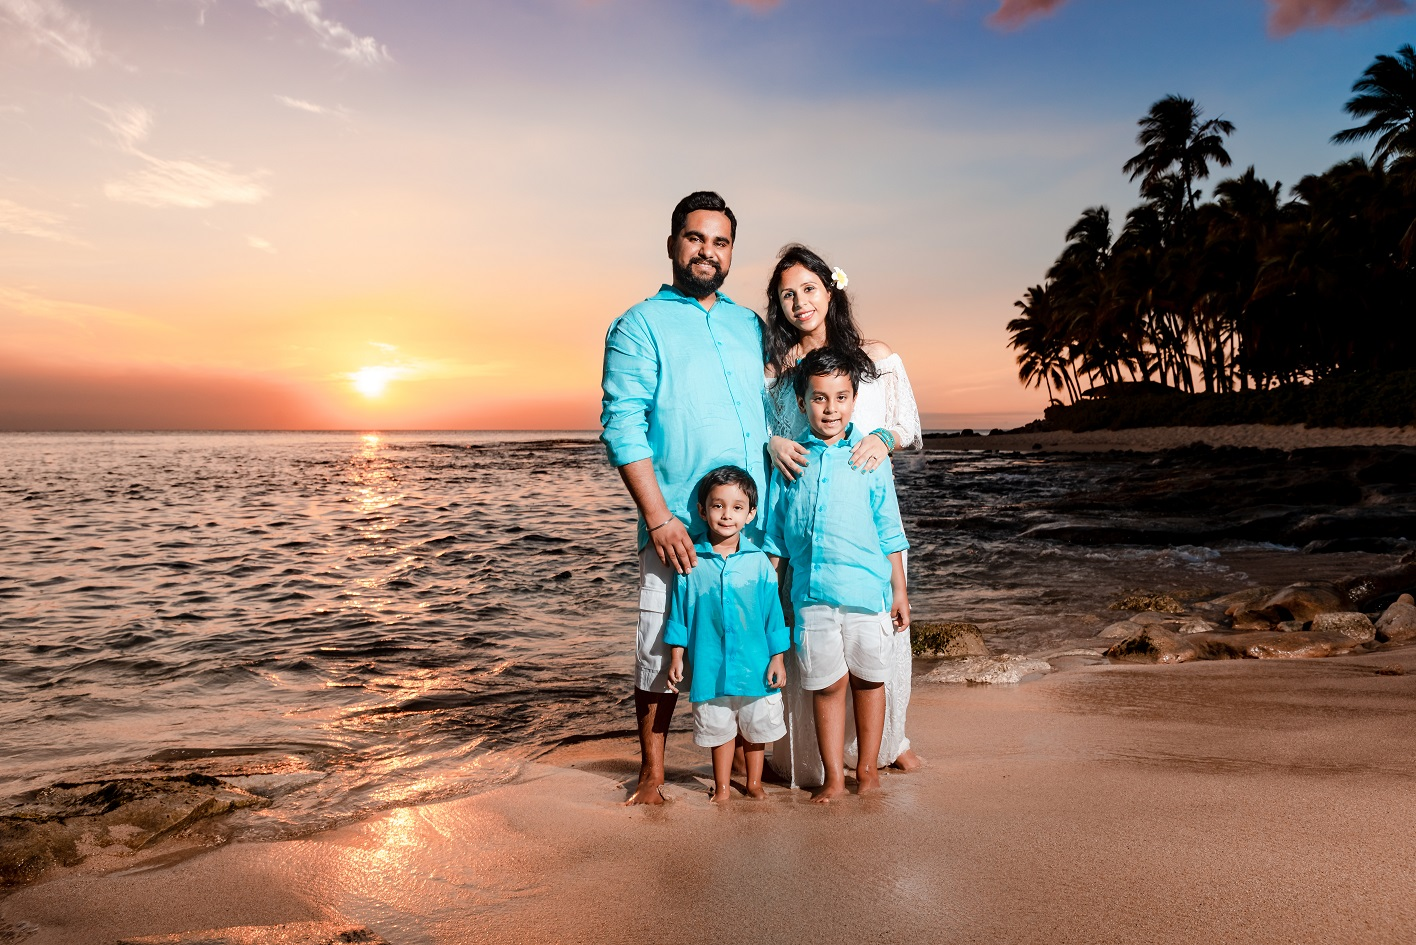 family portrait on hawaii beach sunset palm trees